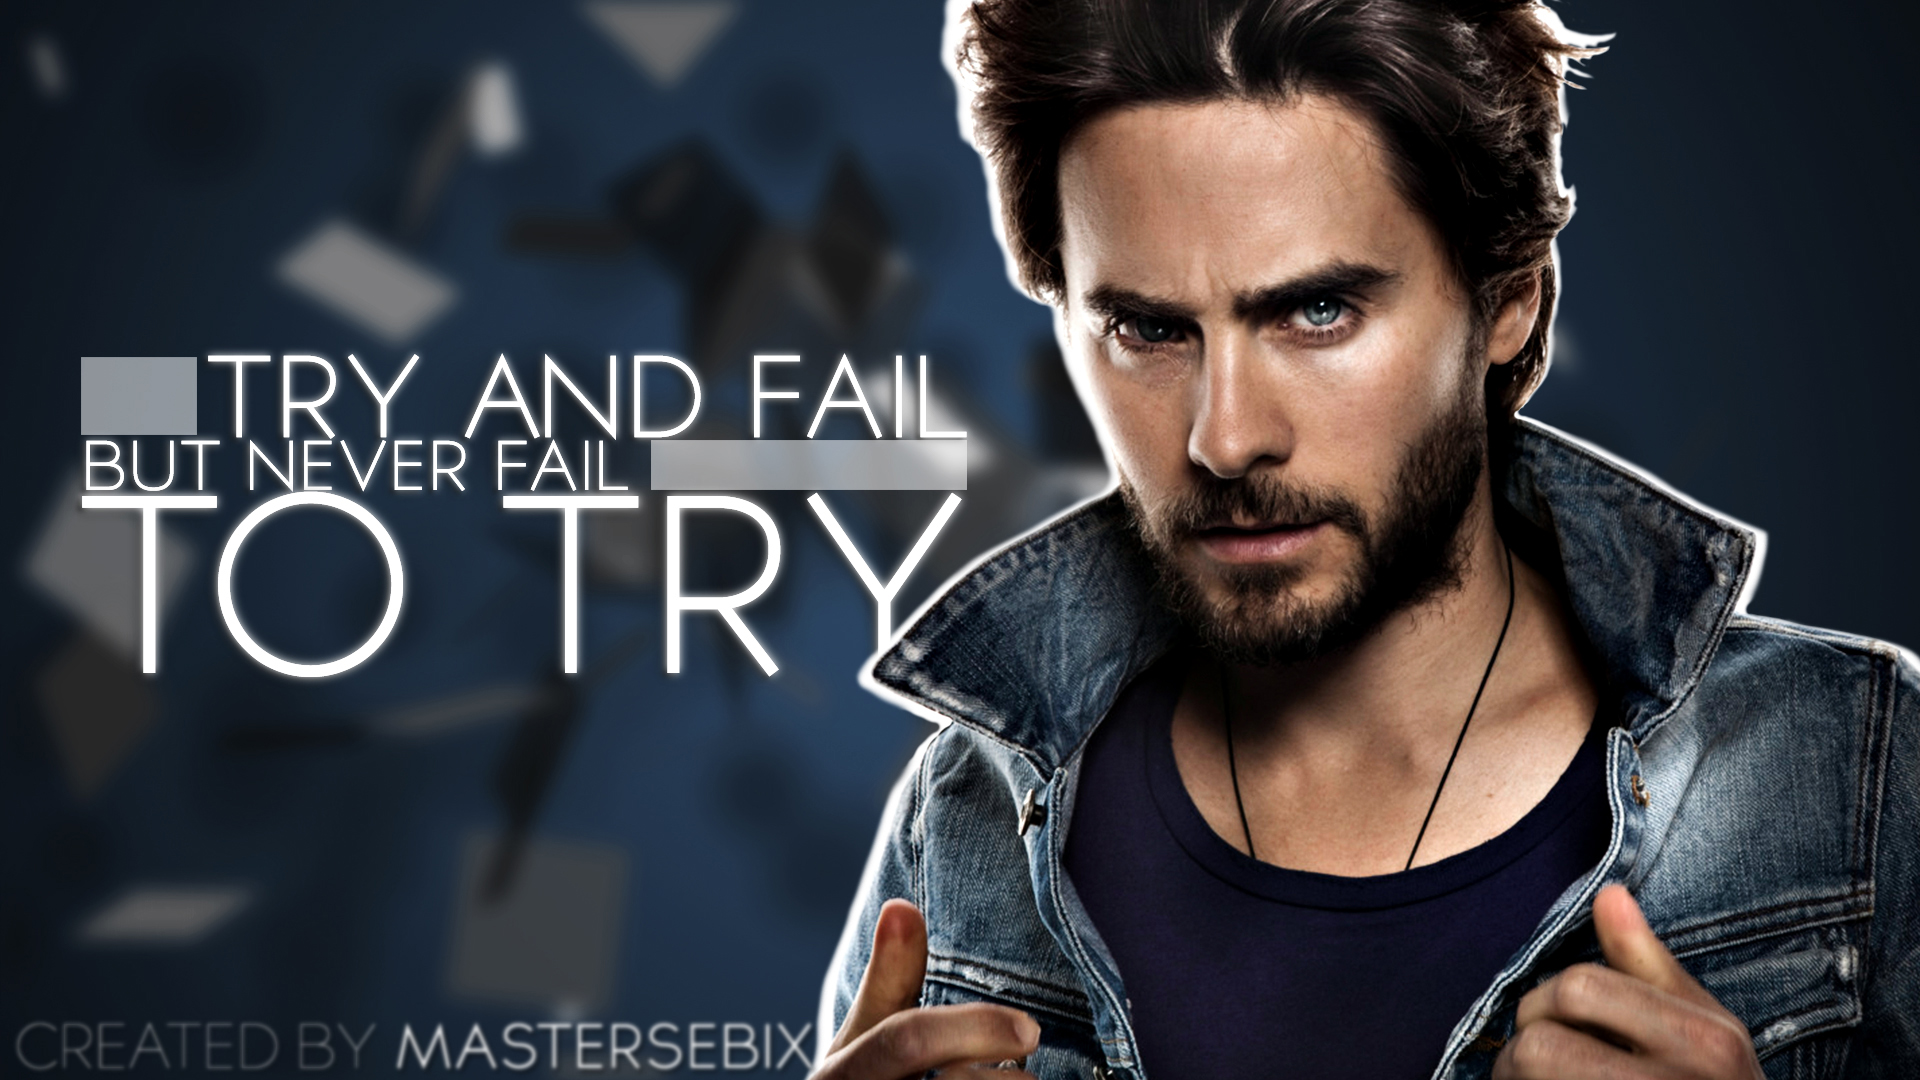 Jared Leto - Try And Fail, But Never Fail To Try. by mastersebiX